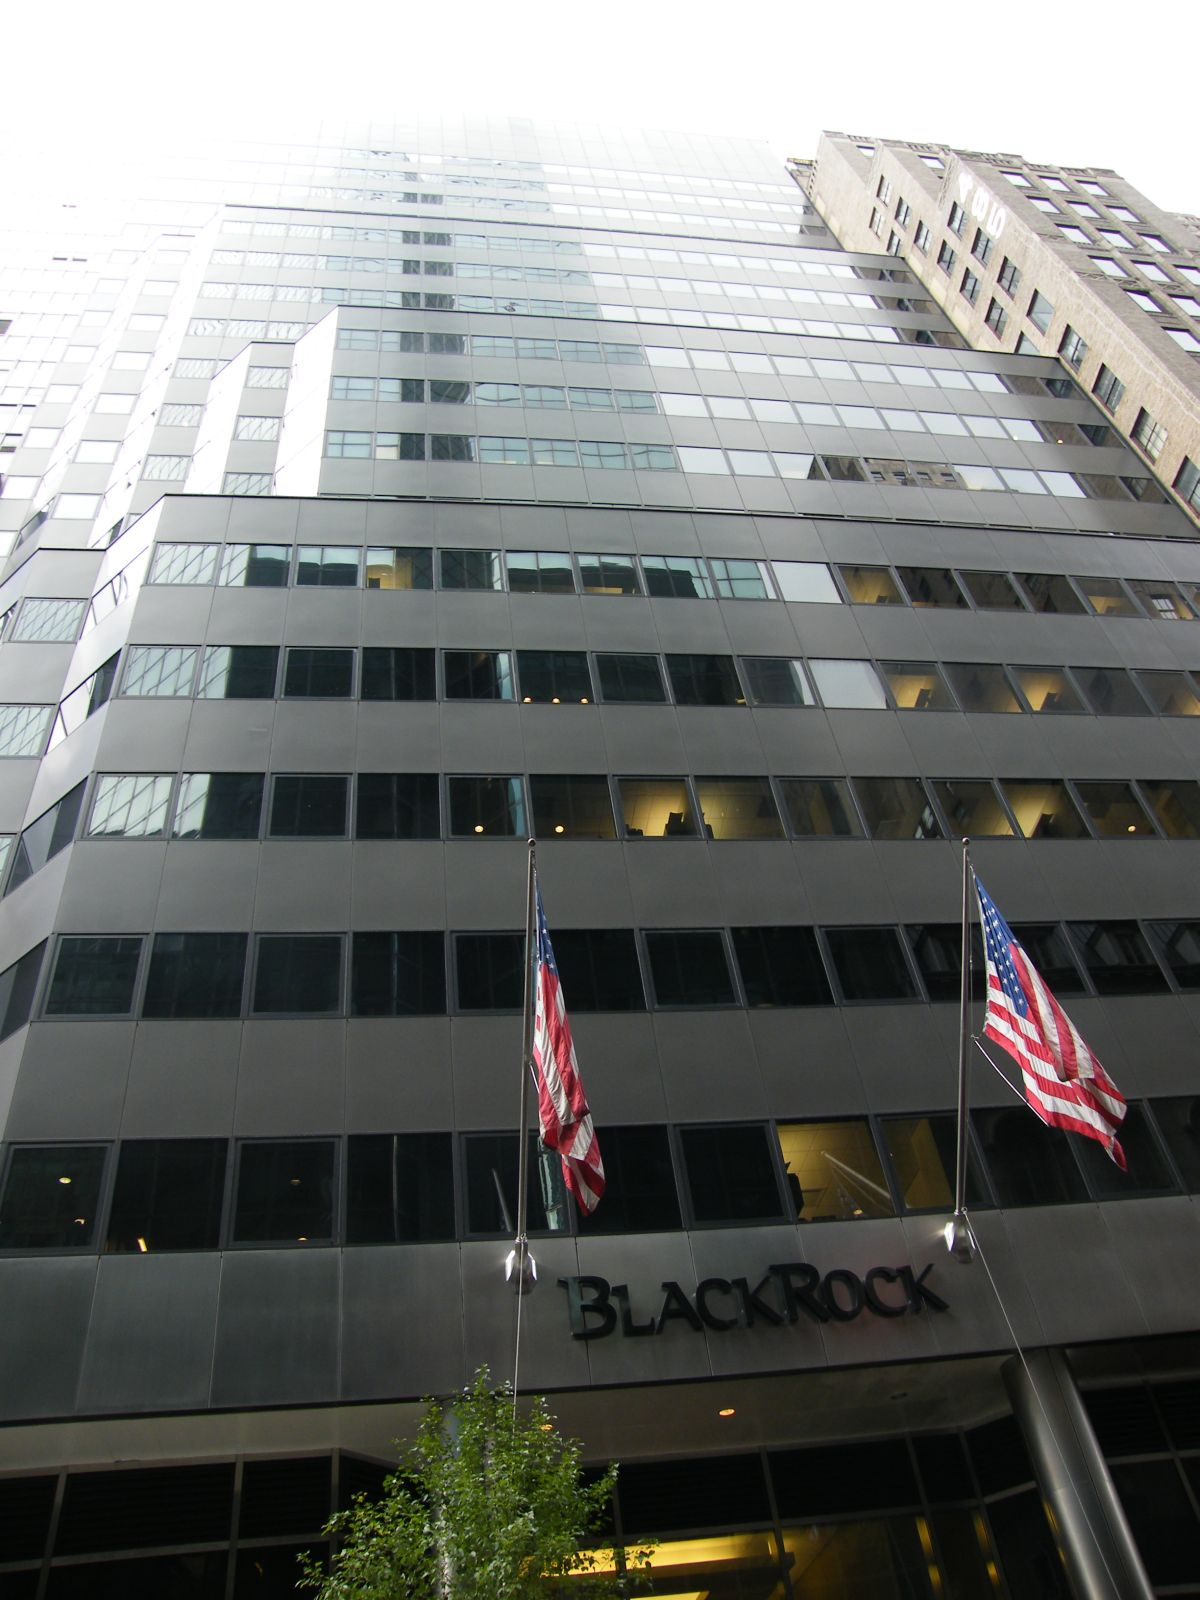 BlackRock: Financial Planning & Investment Management